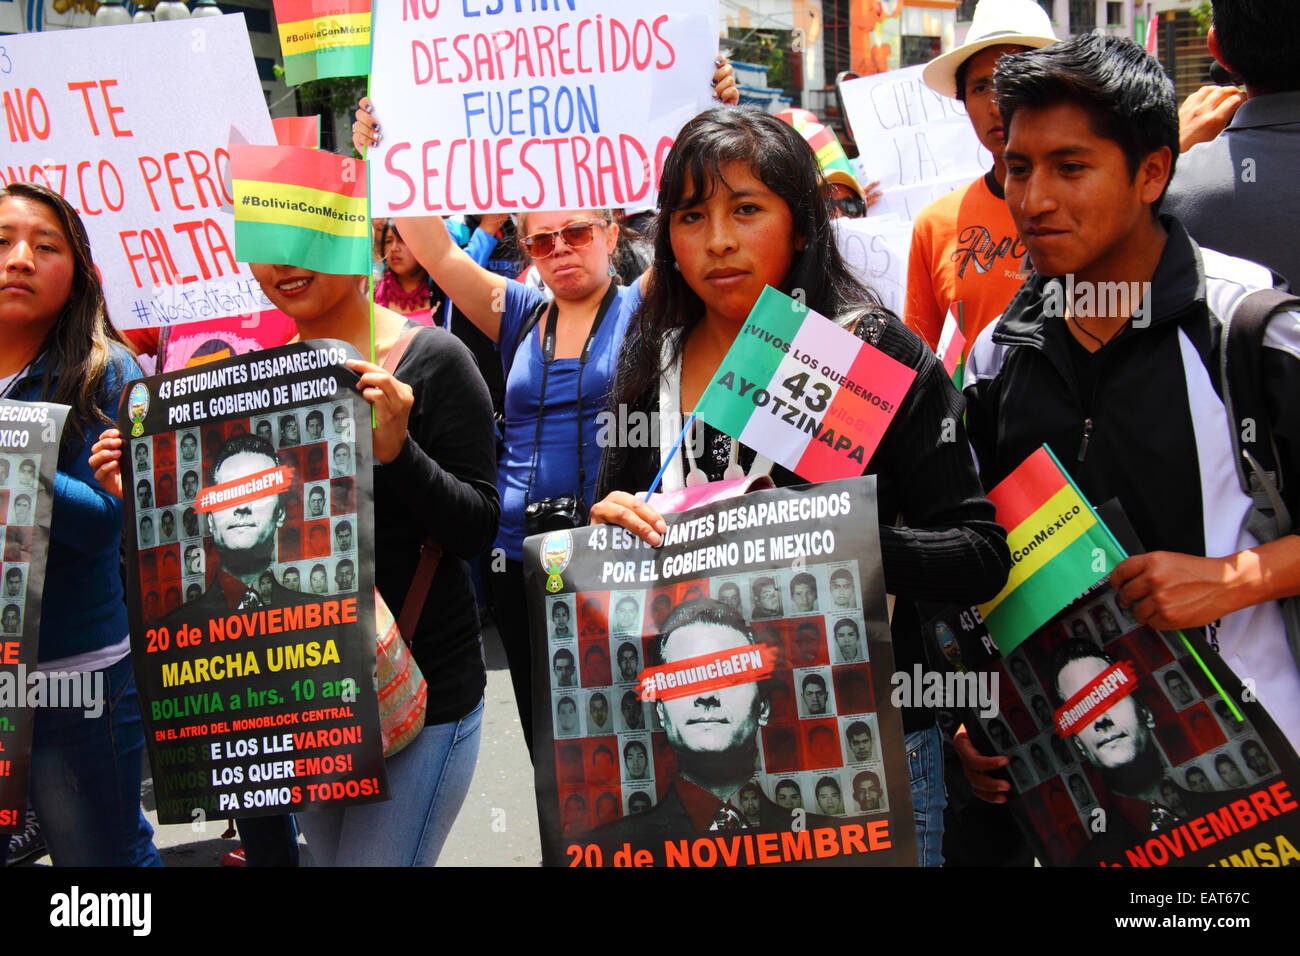 La Paz, Bolivia. 20th November, 2014. Protesters march to demand justice for the 43 missing students in Mexico and Stock Photo